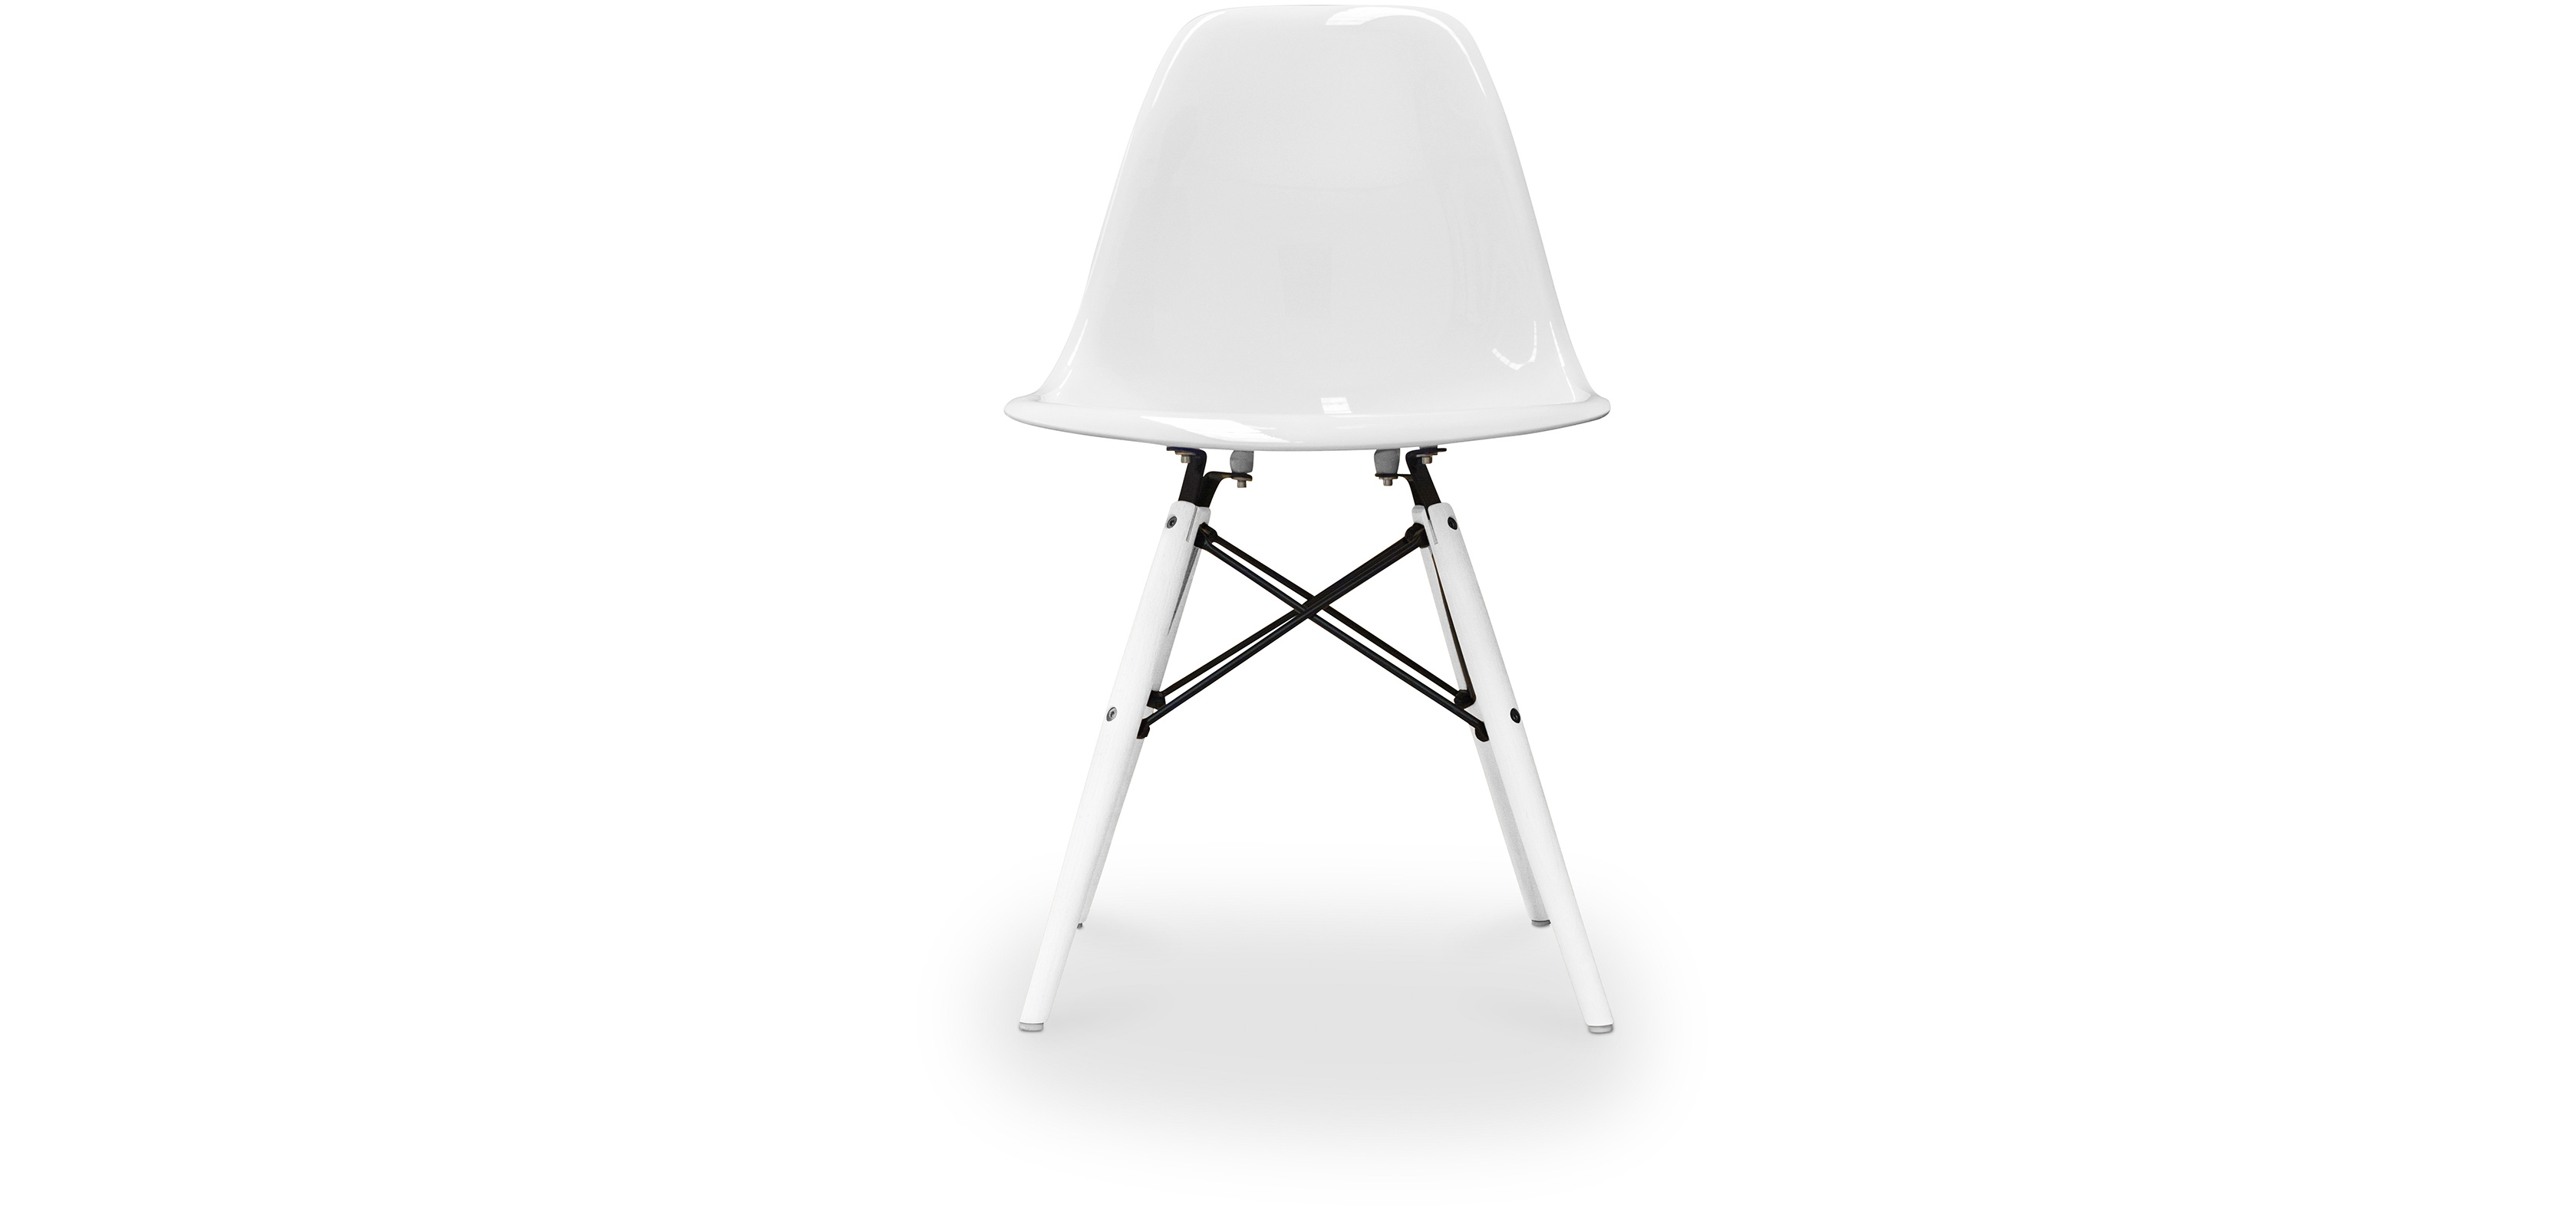 Groovy Dsw Chair Charles Eames Style White Legs Ocoug Best Dining Table And Chair Ideas Images Ocougorg